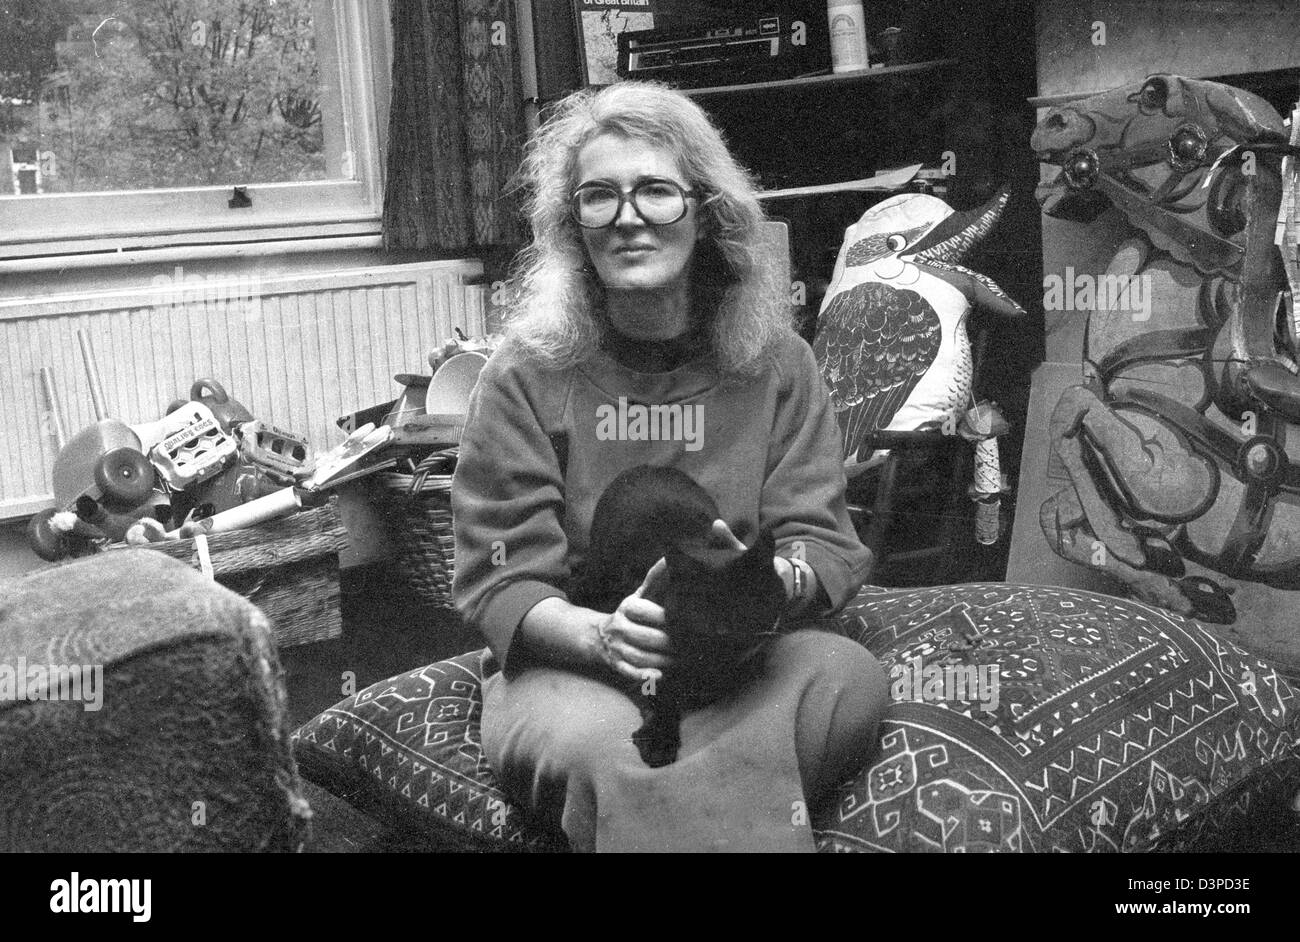 Angela Carter was an English novelist and journalist, known for her feminist, magical realism, and picaresque works. - Stock Image